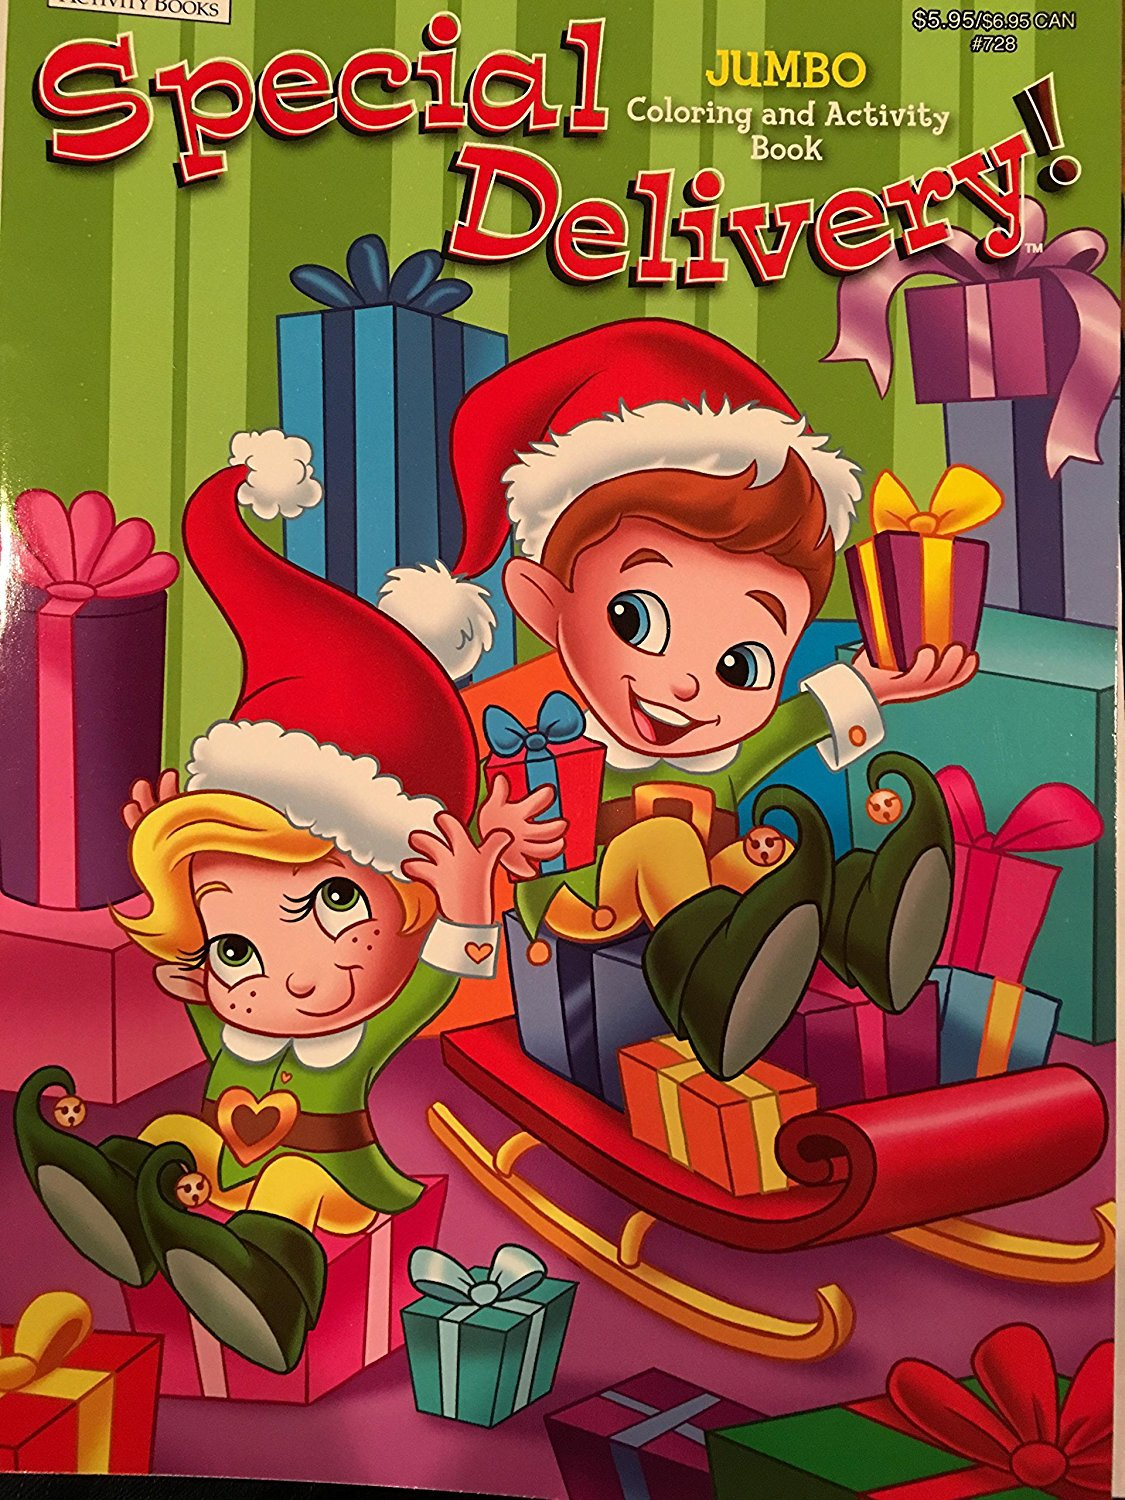 Special Delivery Jumbo Coloring and Activity Book